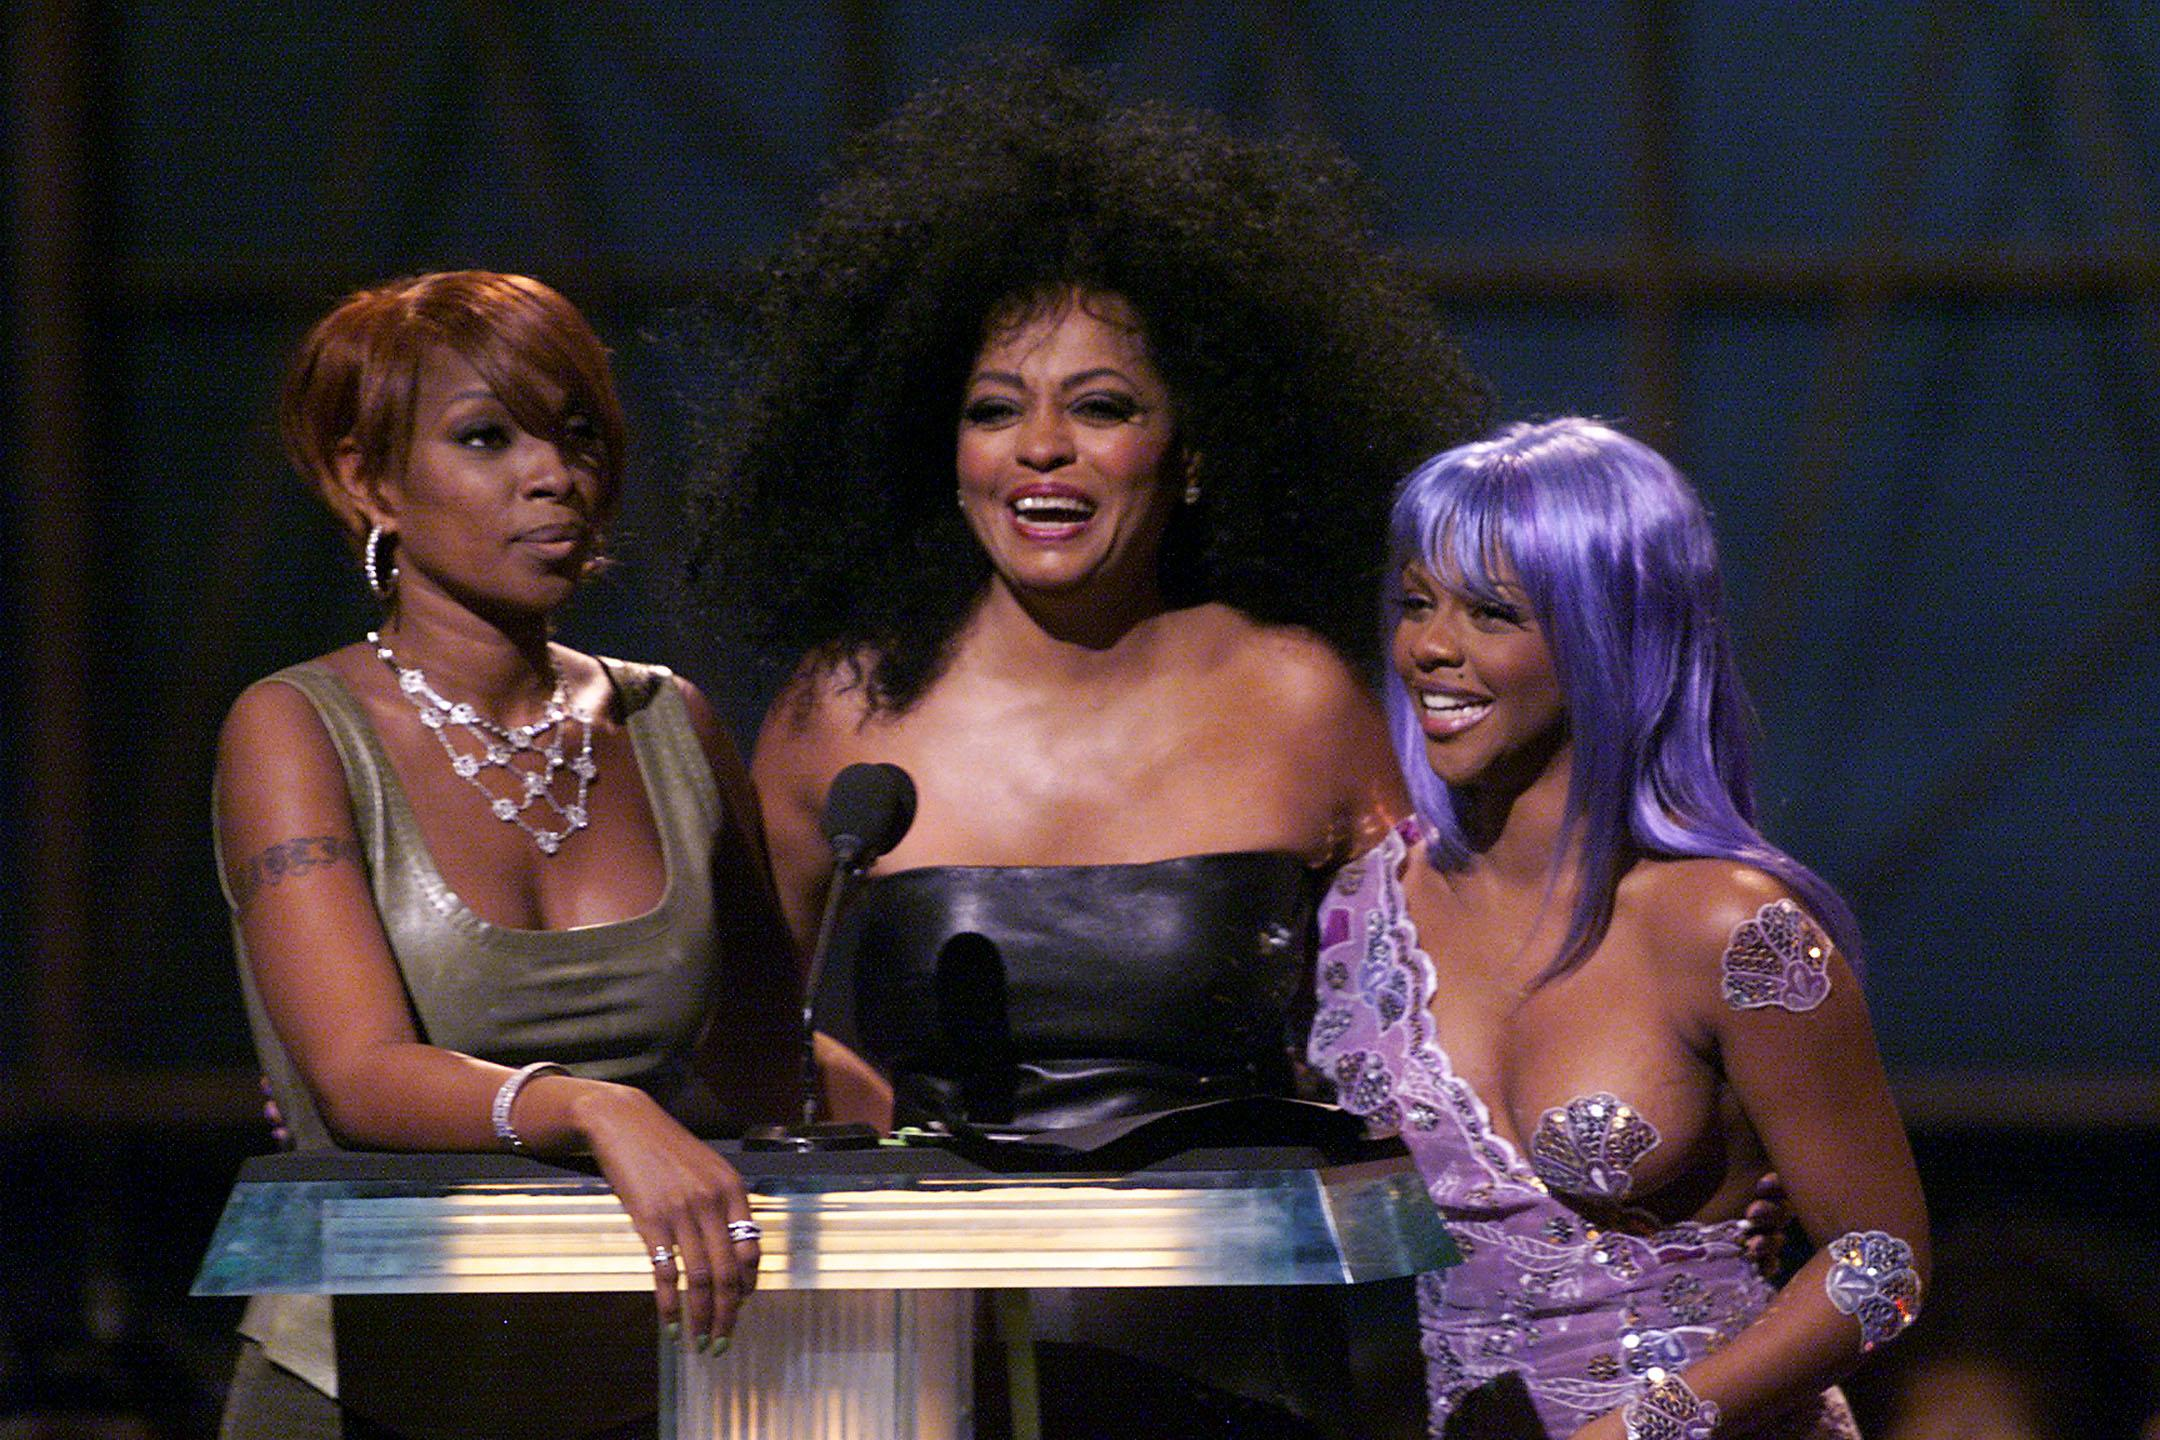 lil-kim-purple-bodysuit-1540317701282-1540319724862.jpg